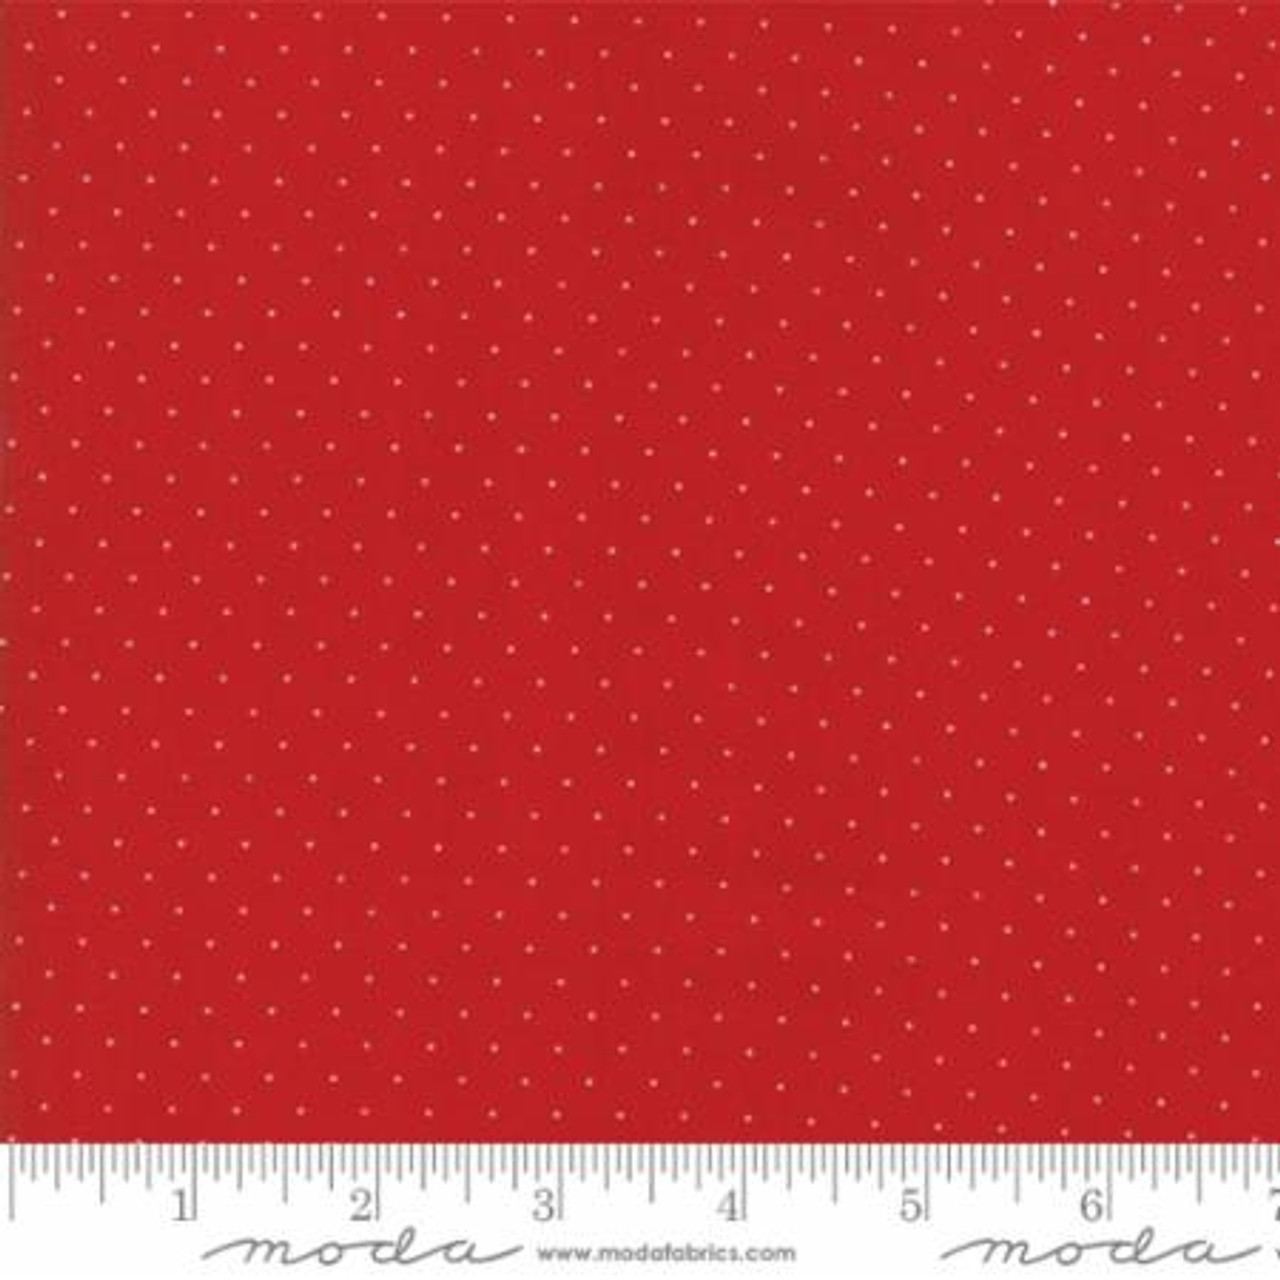 Sorbet Essentials BTY Quilting Treasures Tonal Red Polka Dots on White